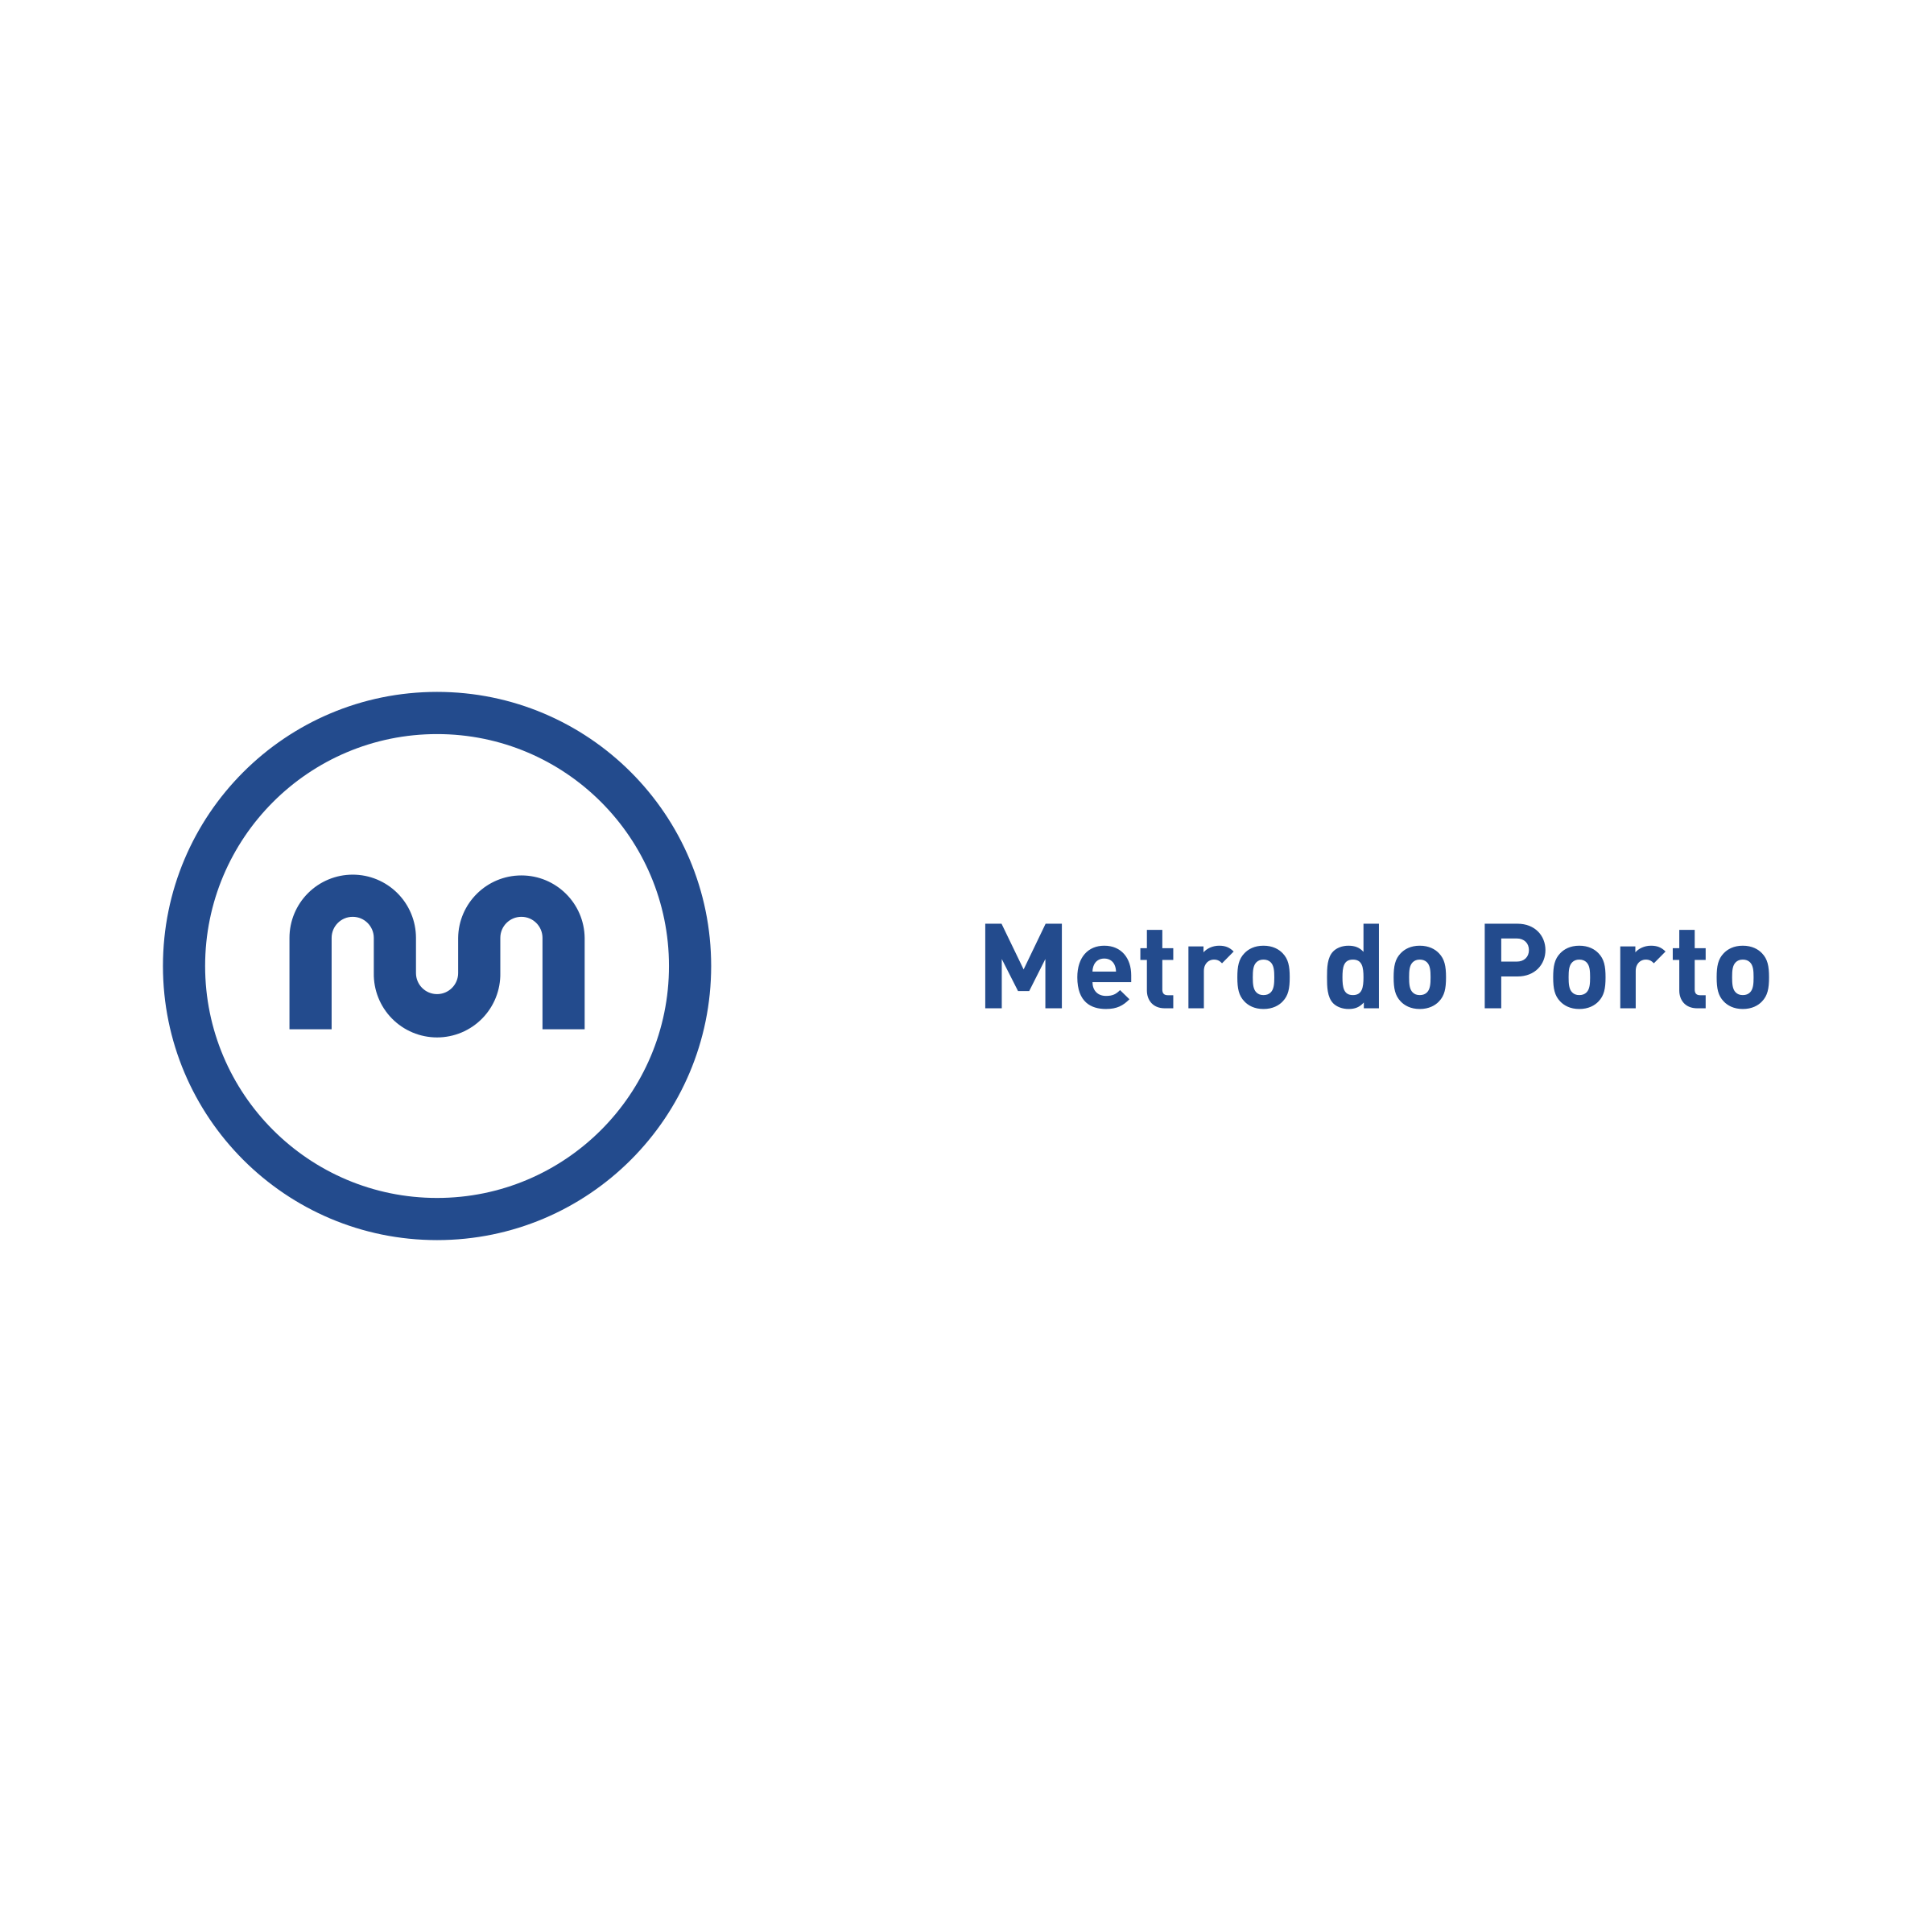 metro-do-porto-1-logo-png-transparent